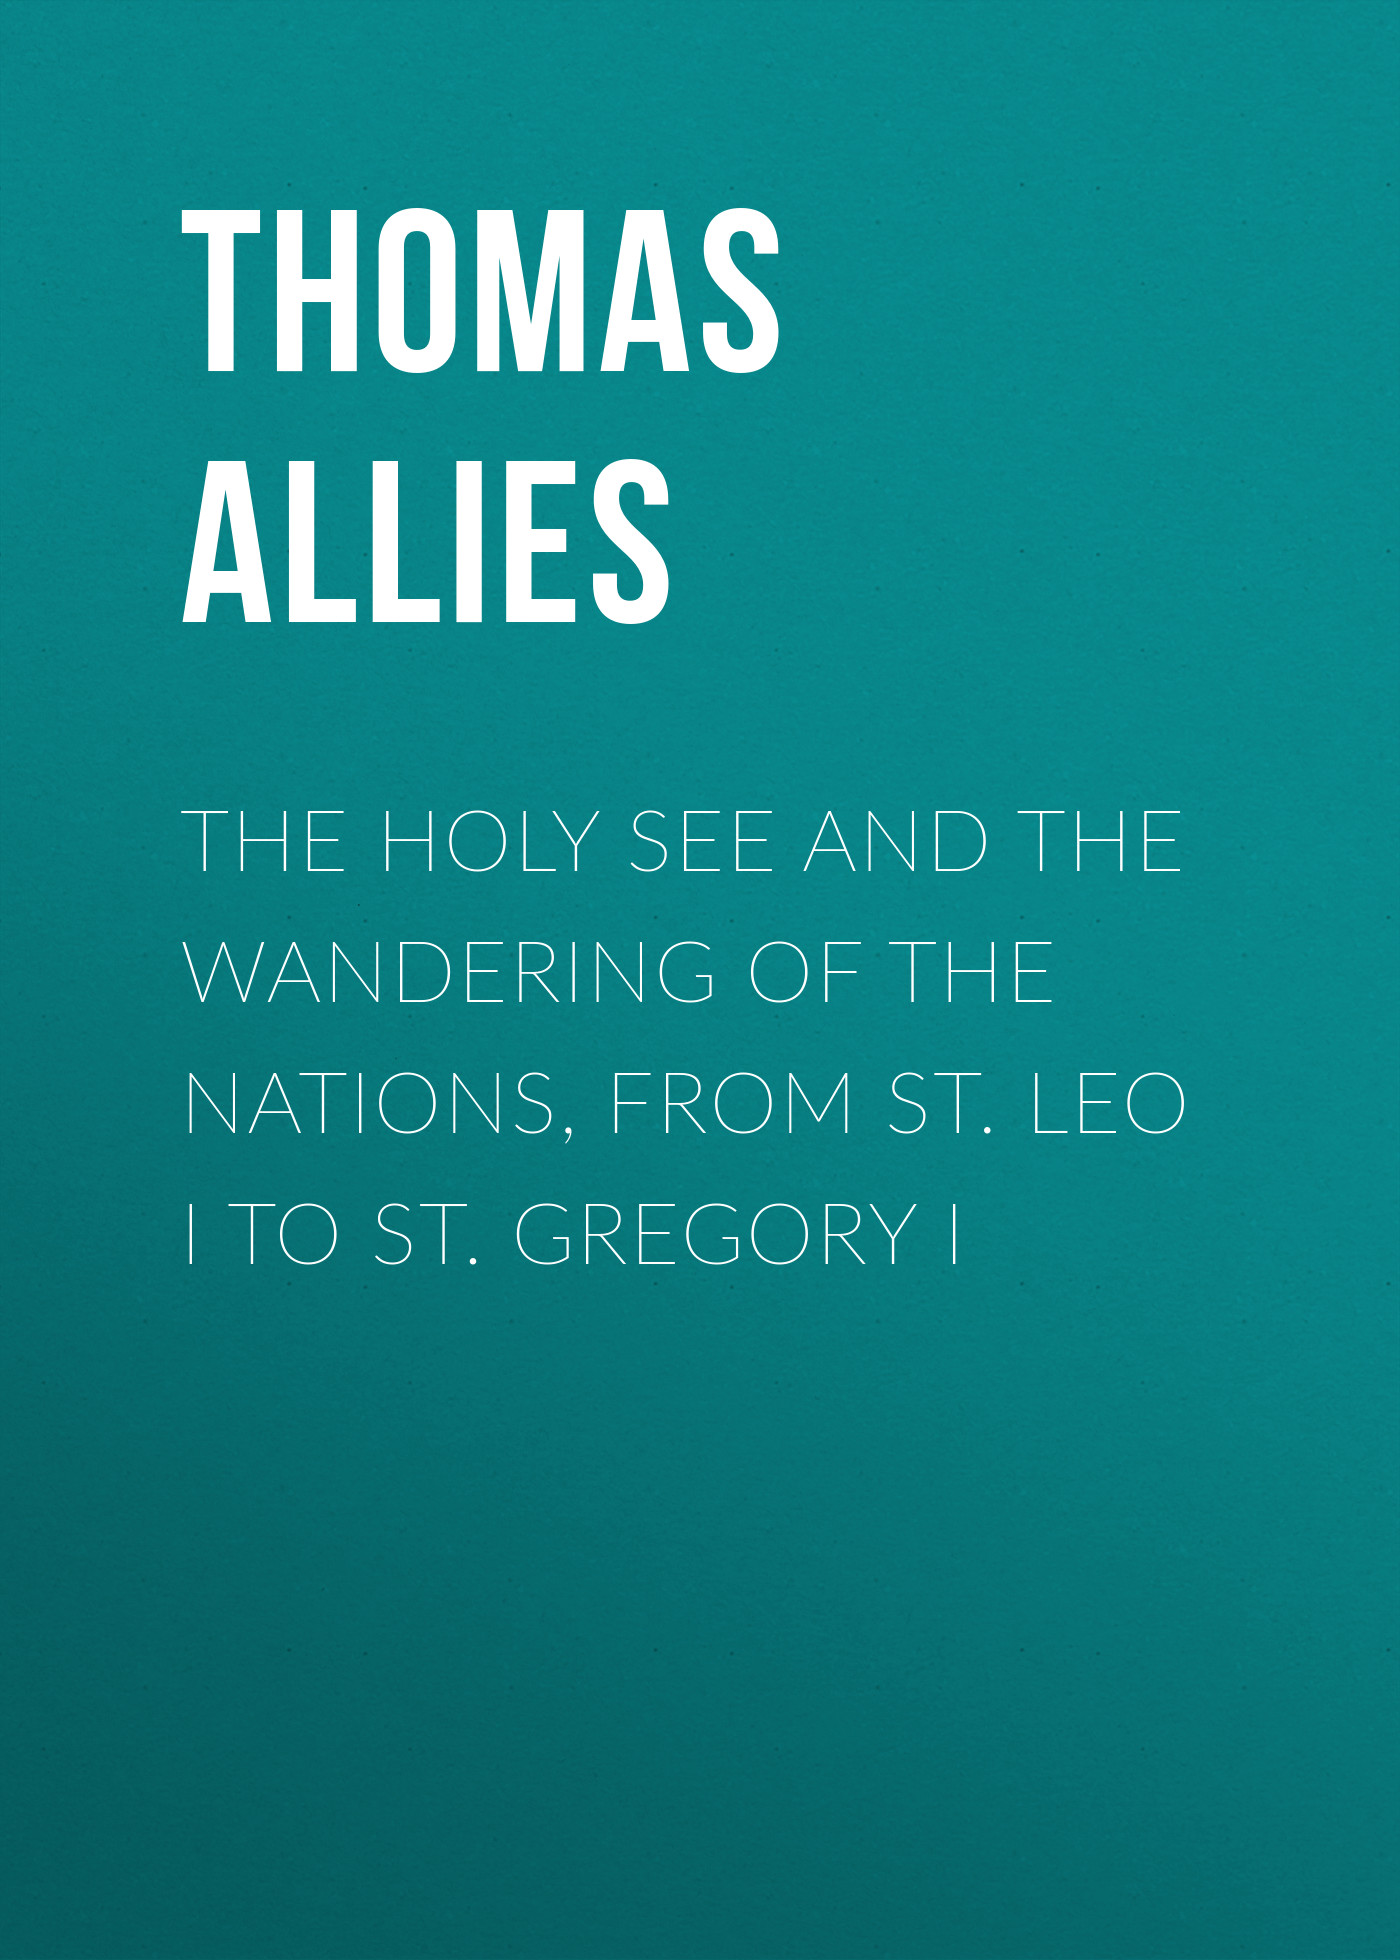 Allies Thomas William The Holy See and the Wandering of the Nations, from St. Leo I to St. Gregory I l7912cv to 220 st 12v l7912